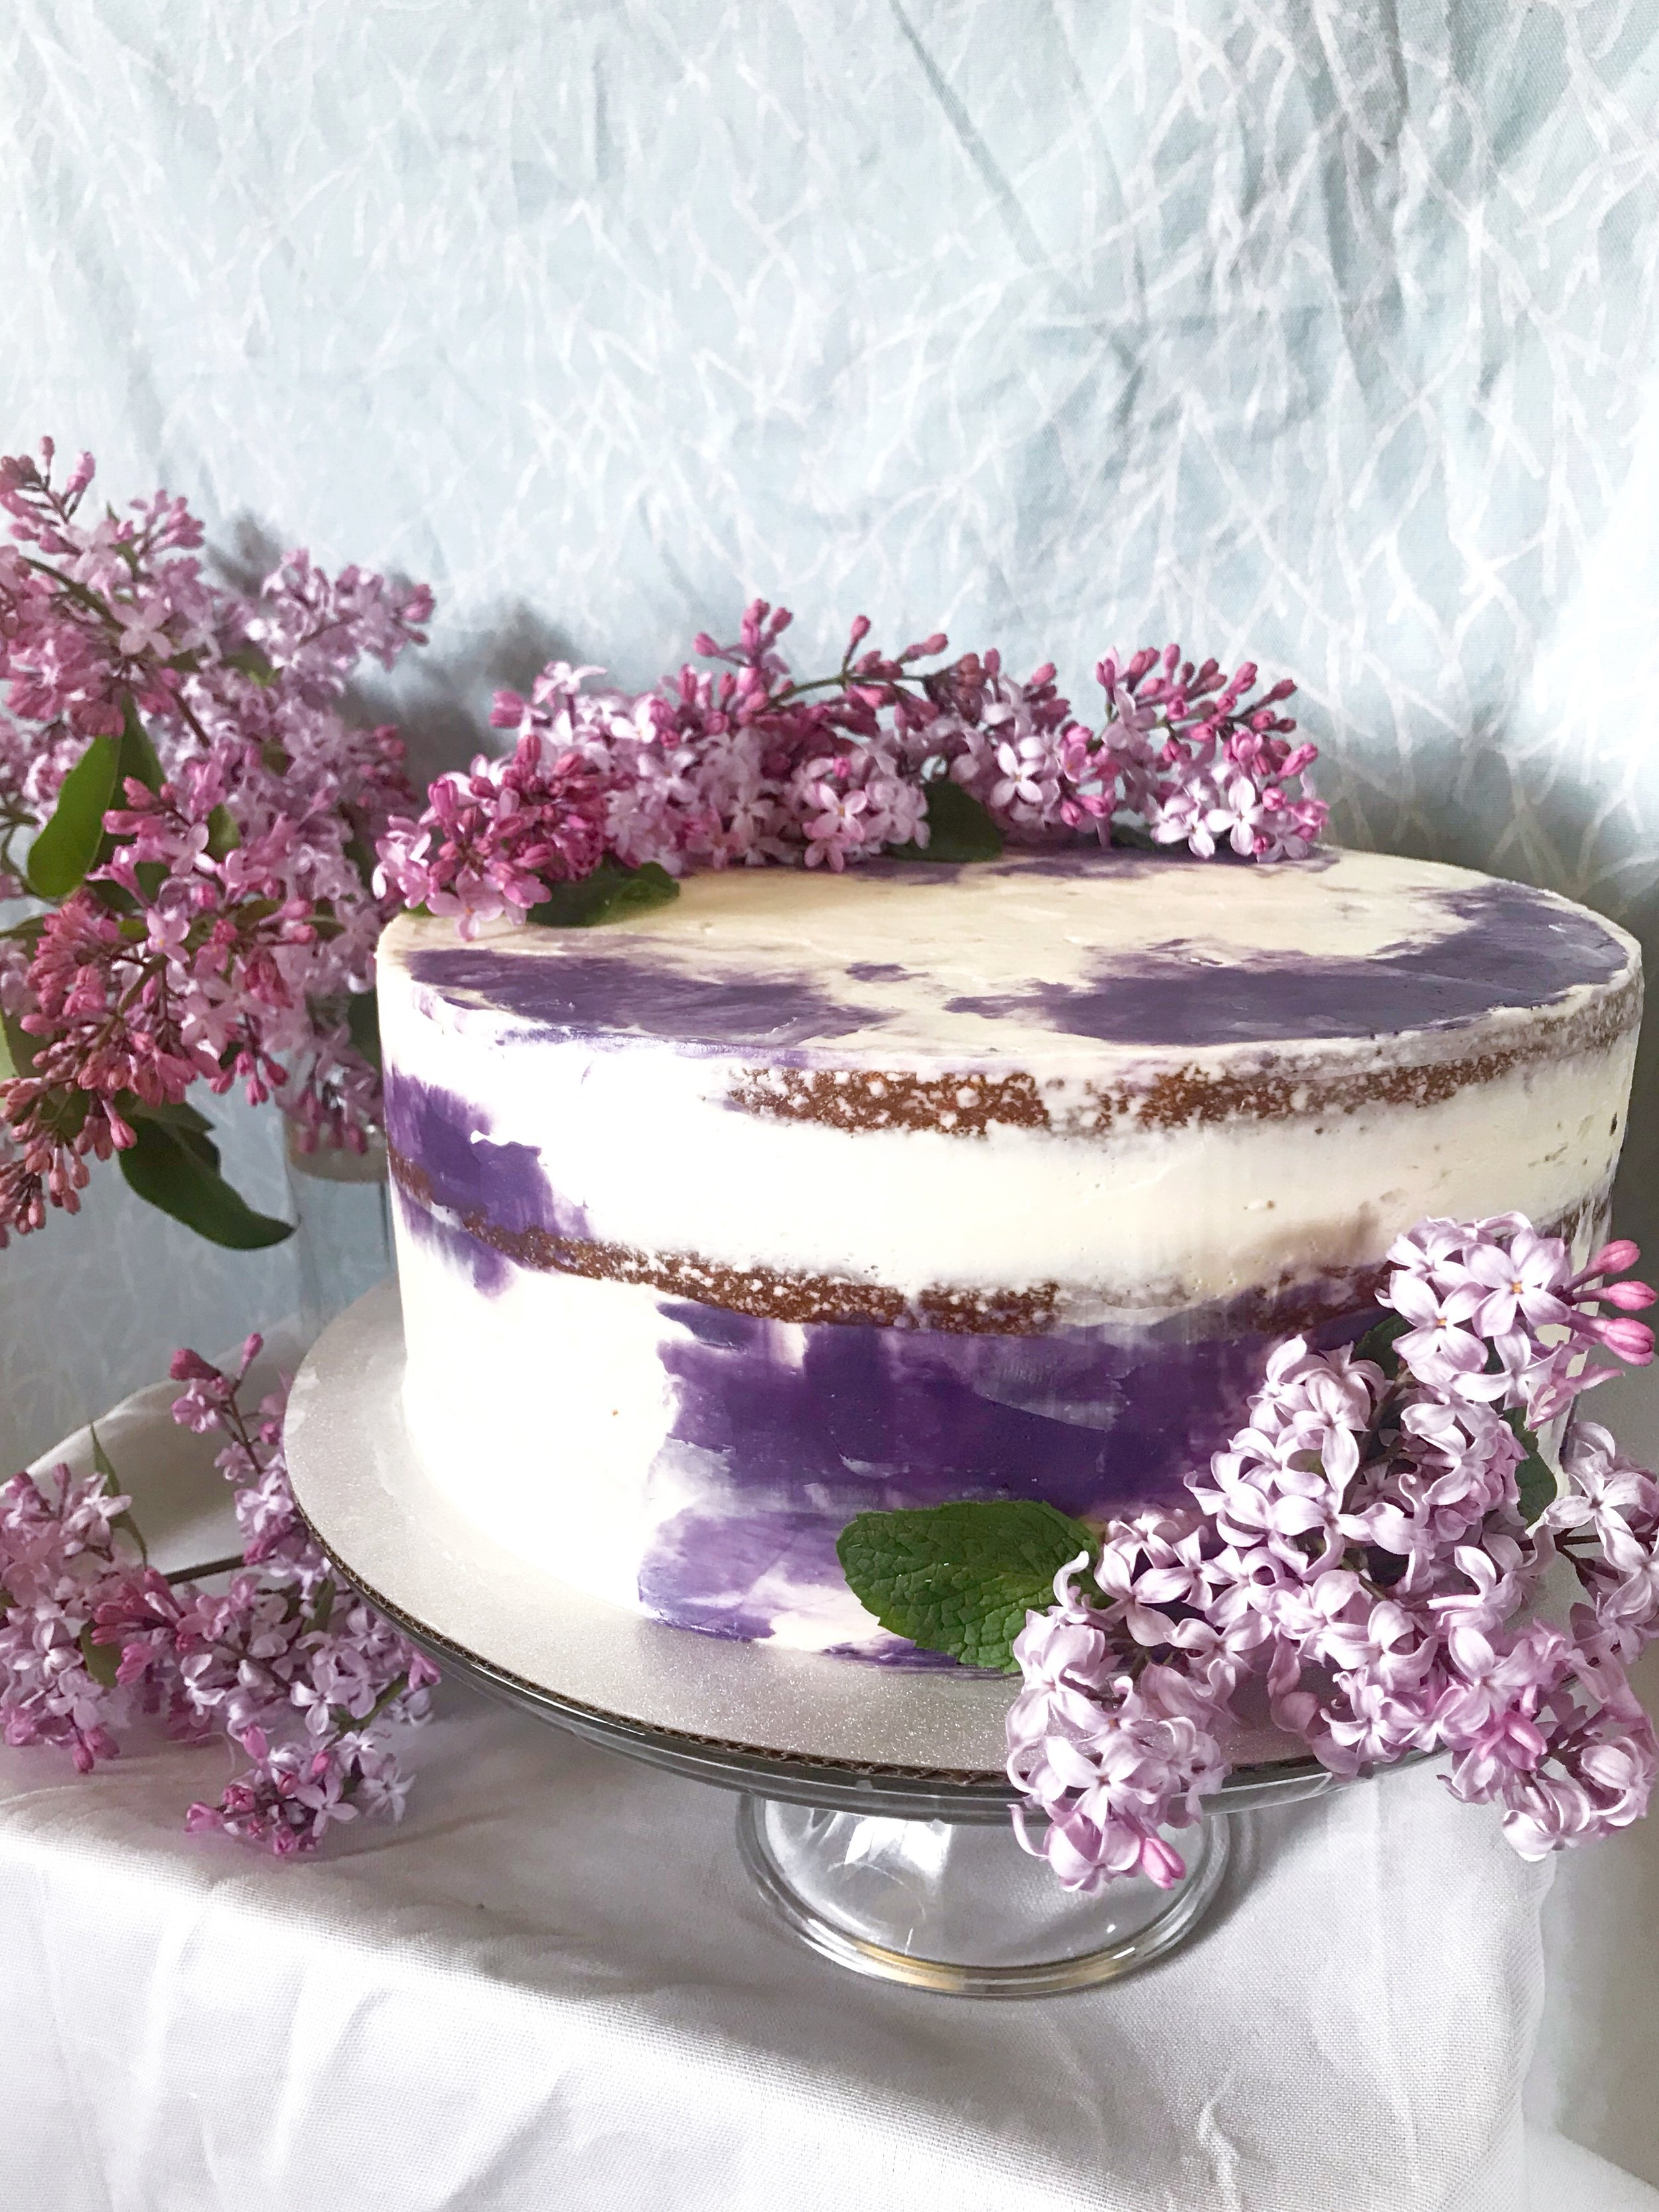 This is only one of I think 3 other cakes I've decorated with lilac. I can't get enough!